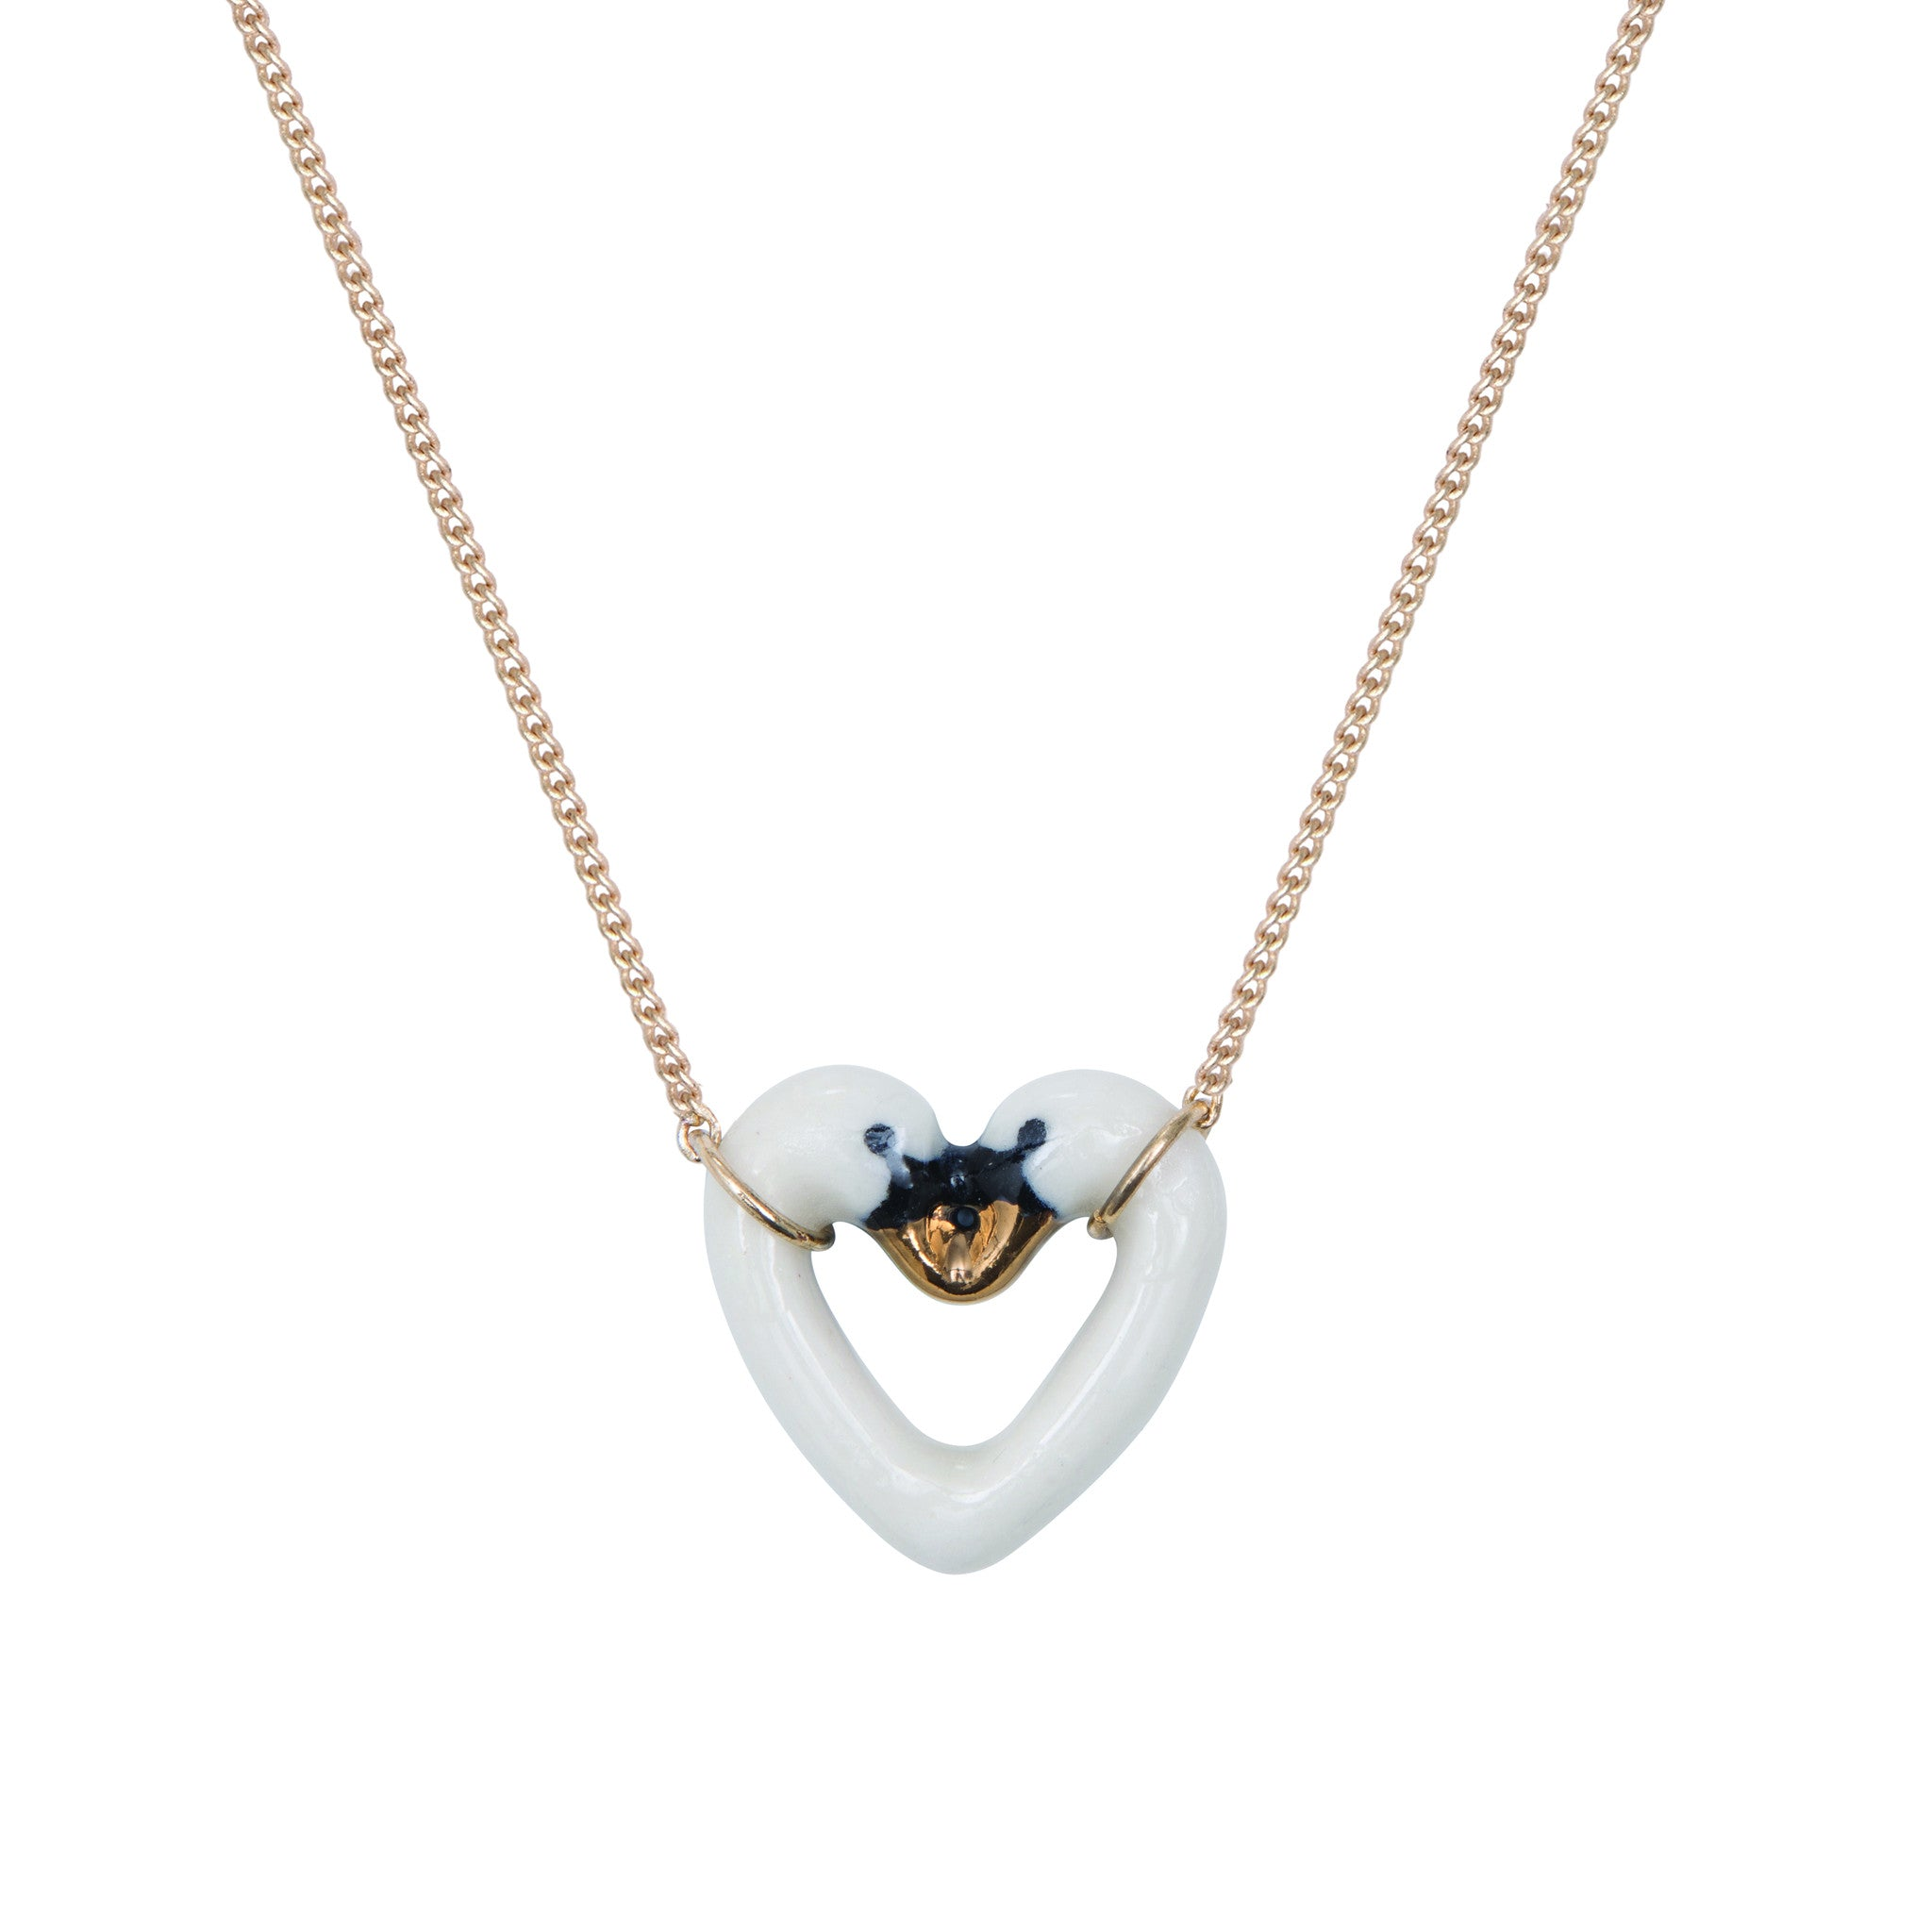 White and Gold Swan Heart Necklace